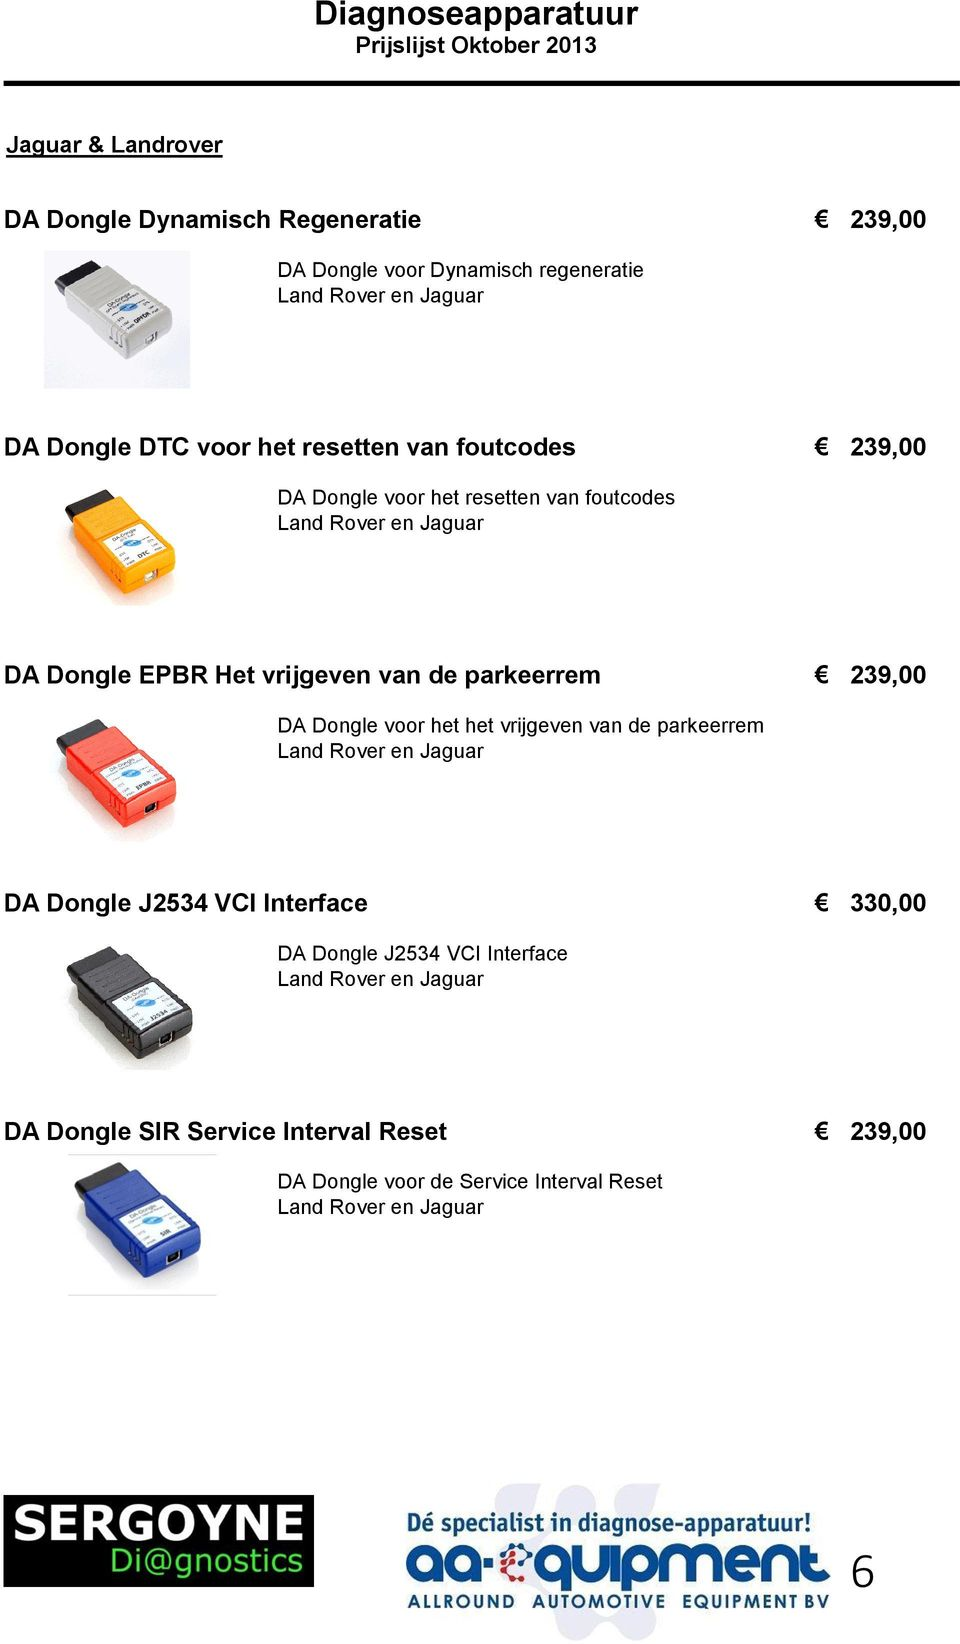 parkeerrem 239,00 DA Dongle voor het het vrijgeven van de parkeerrem Land Rover en Jaguar DA Dongle J2534 VCI Interface 330,00 DA Dongle